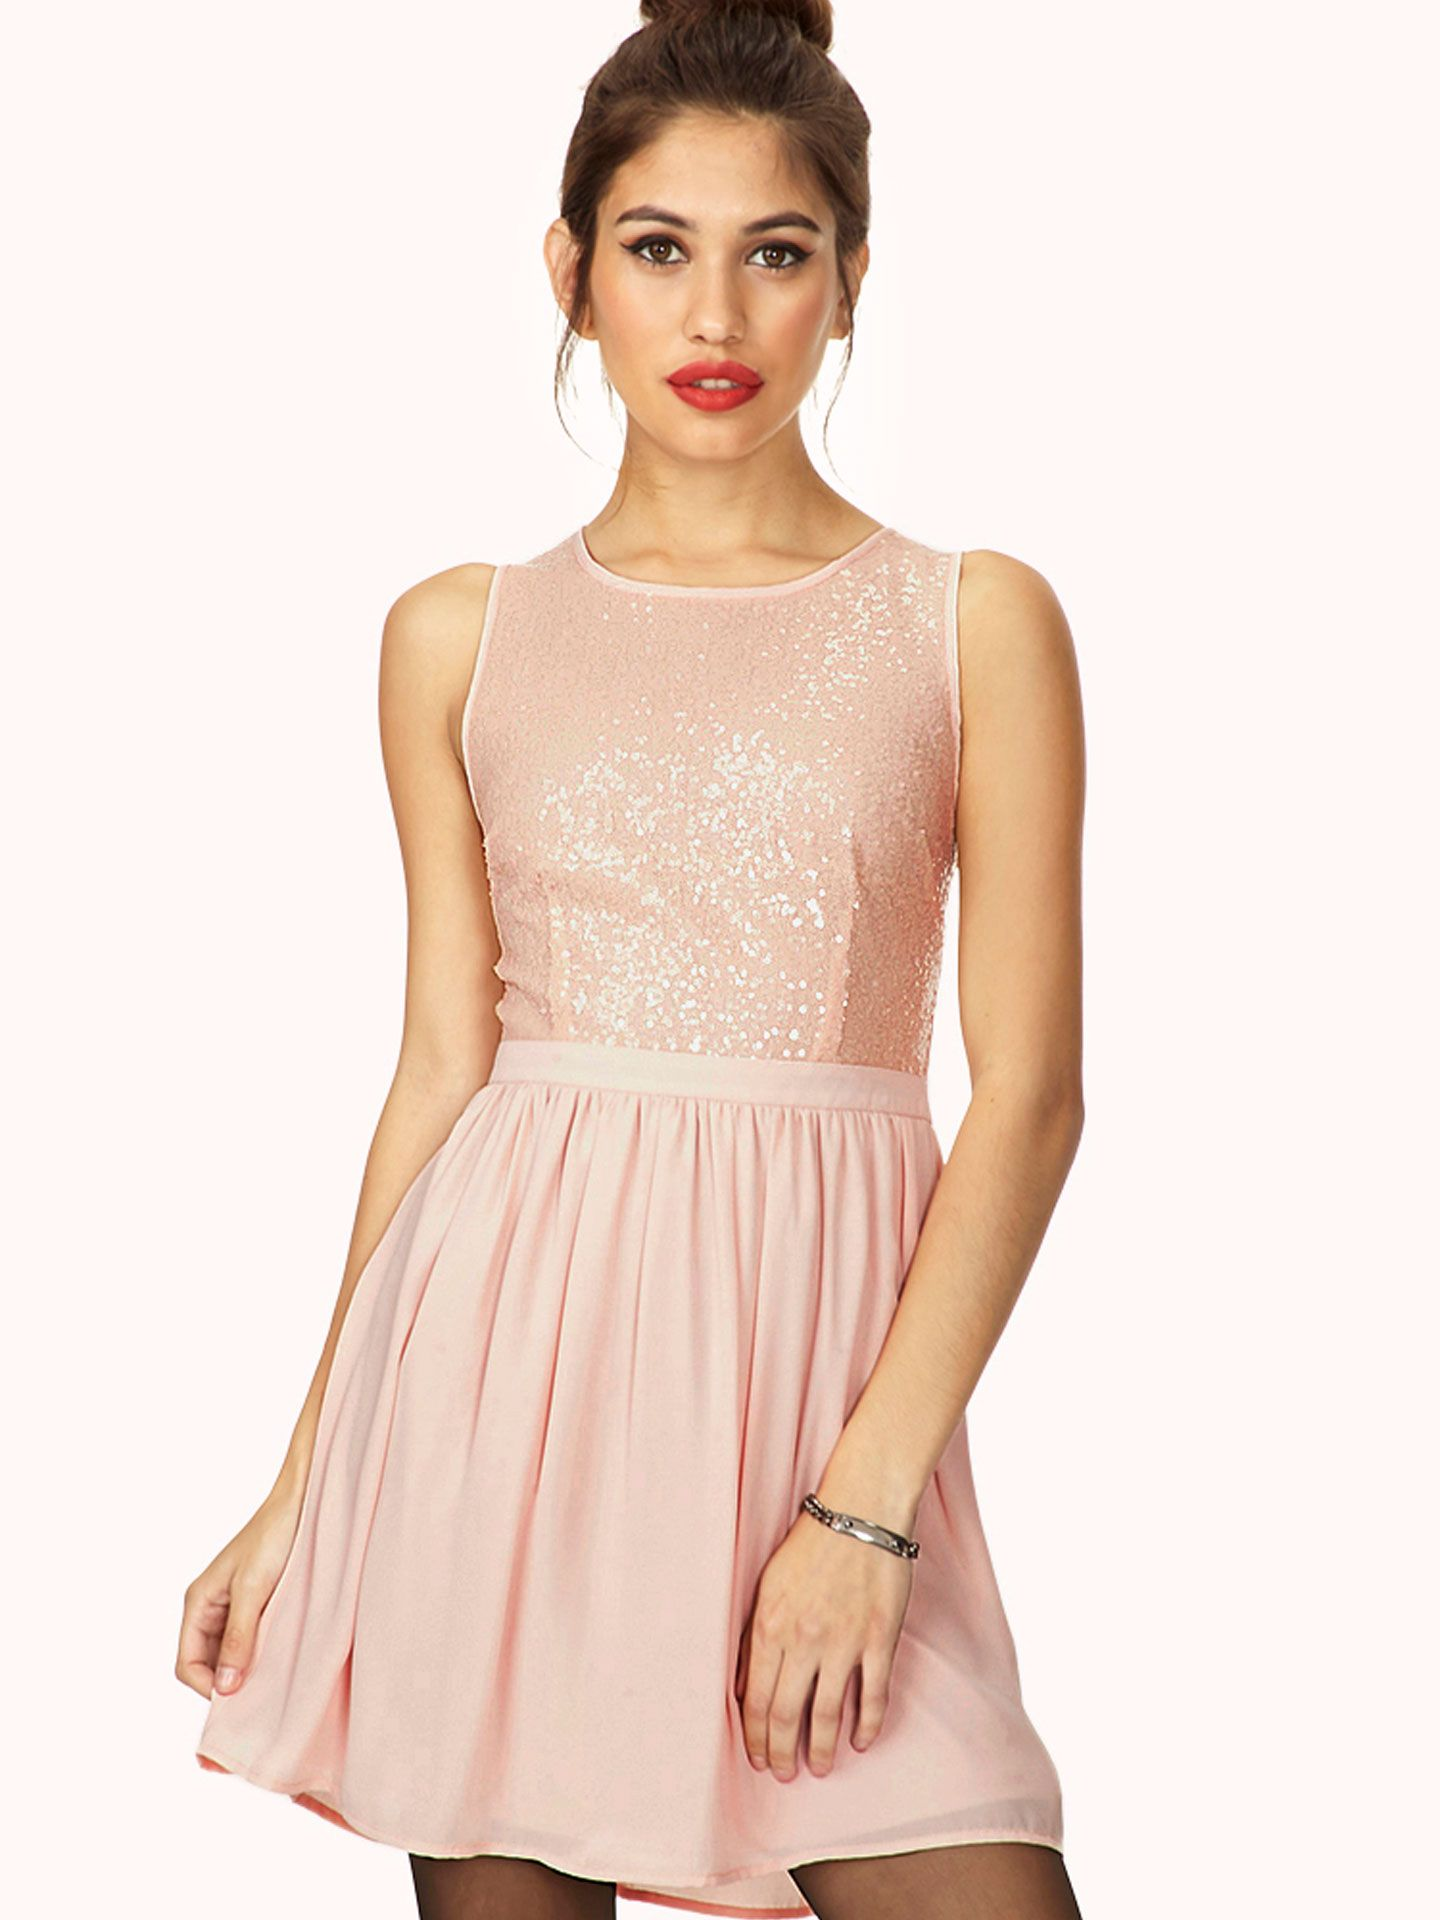 8cb1591179 13 Adorable Prom Dresses You Won t Believe Cost Less Than  50 ...